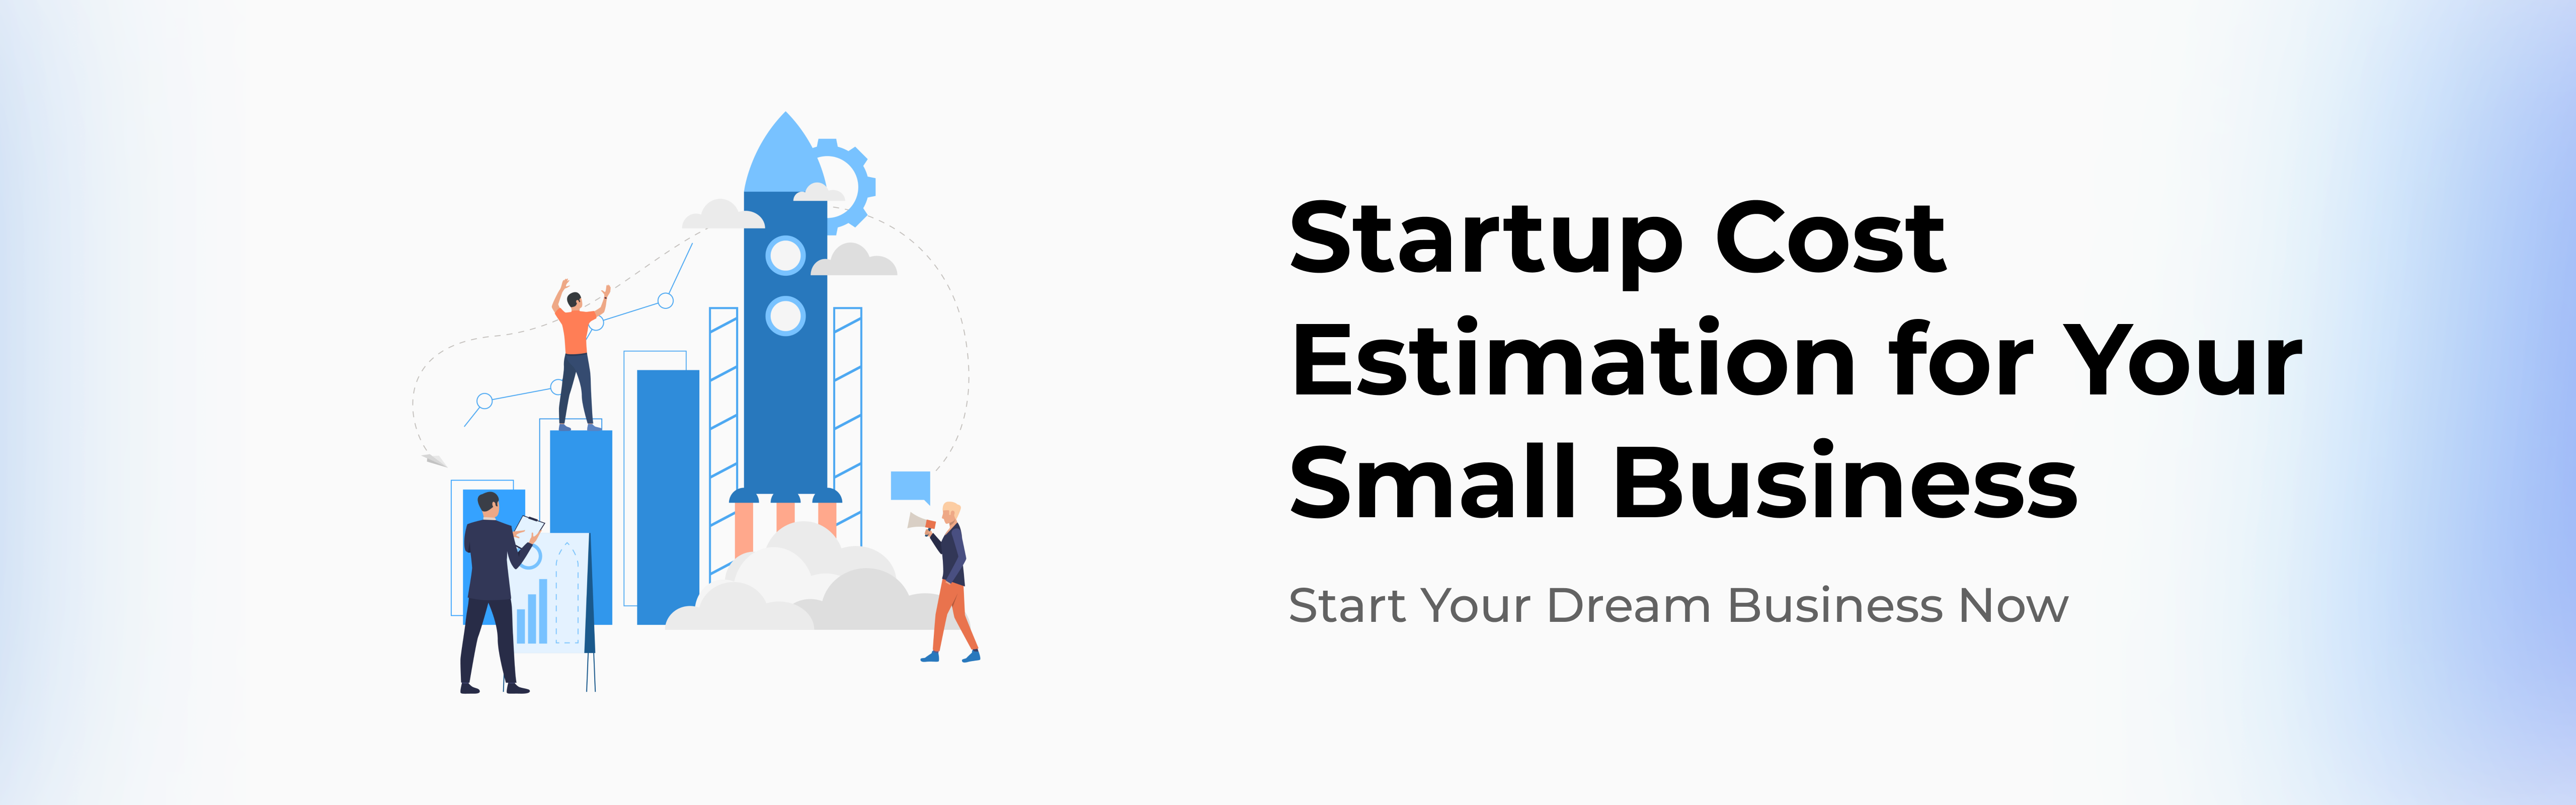 how-to-calculate-startup-costs-for-small-business